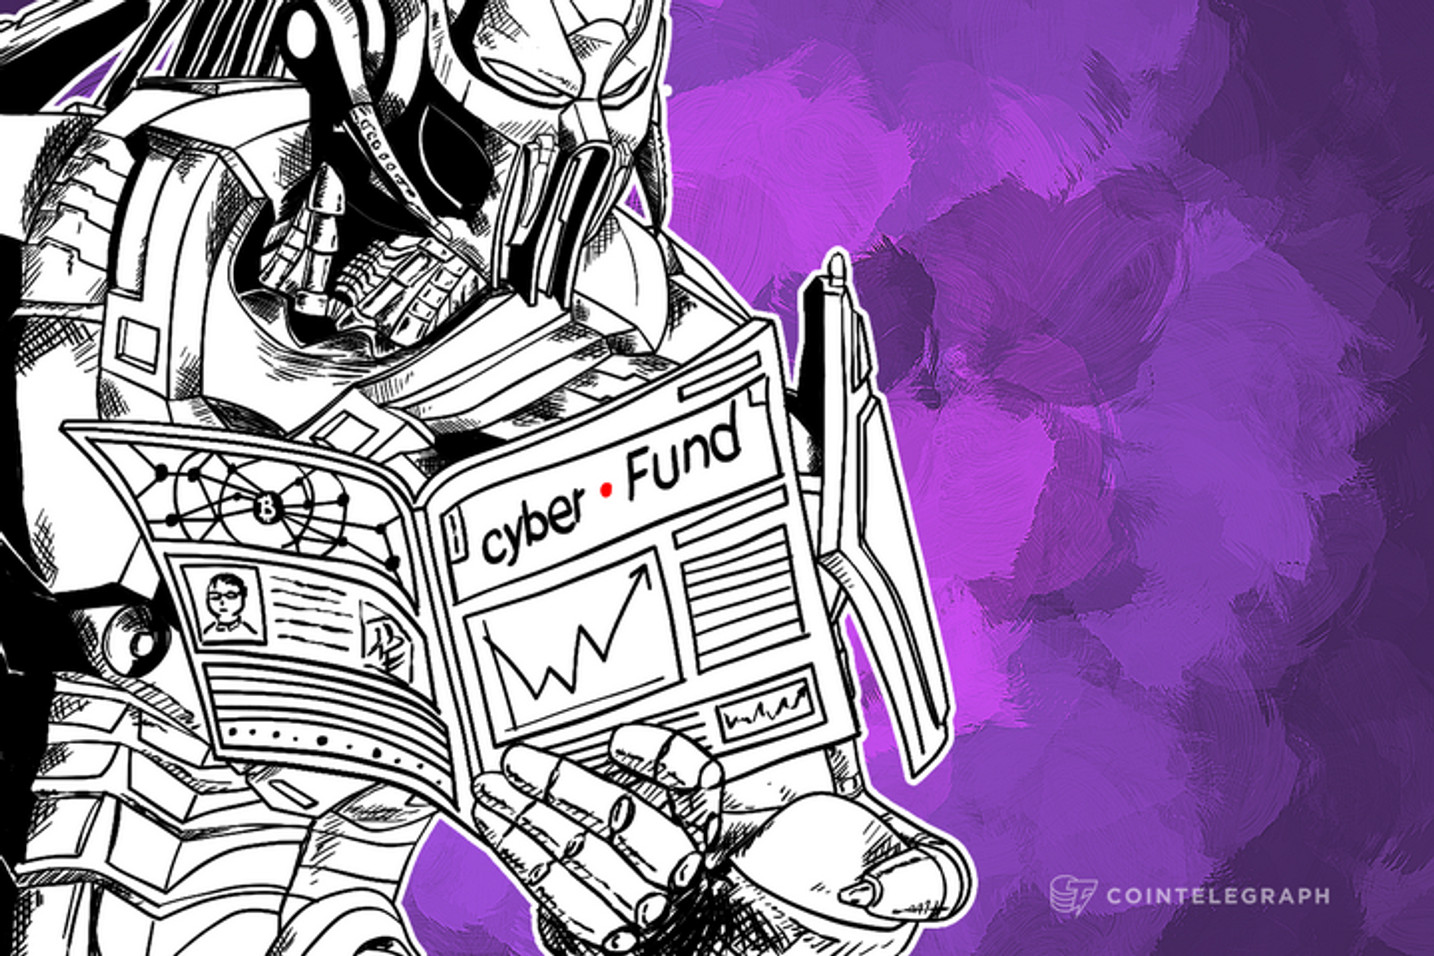 Cyber•Fund Report: DAOs Will Reach Mass Adoption, Disrupt Politics and Religion by 2025